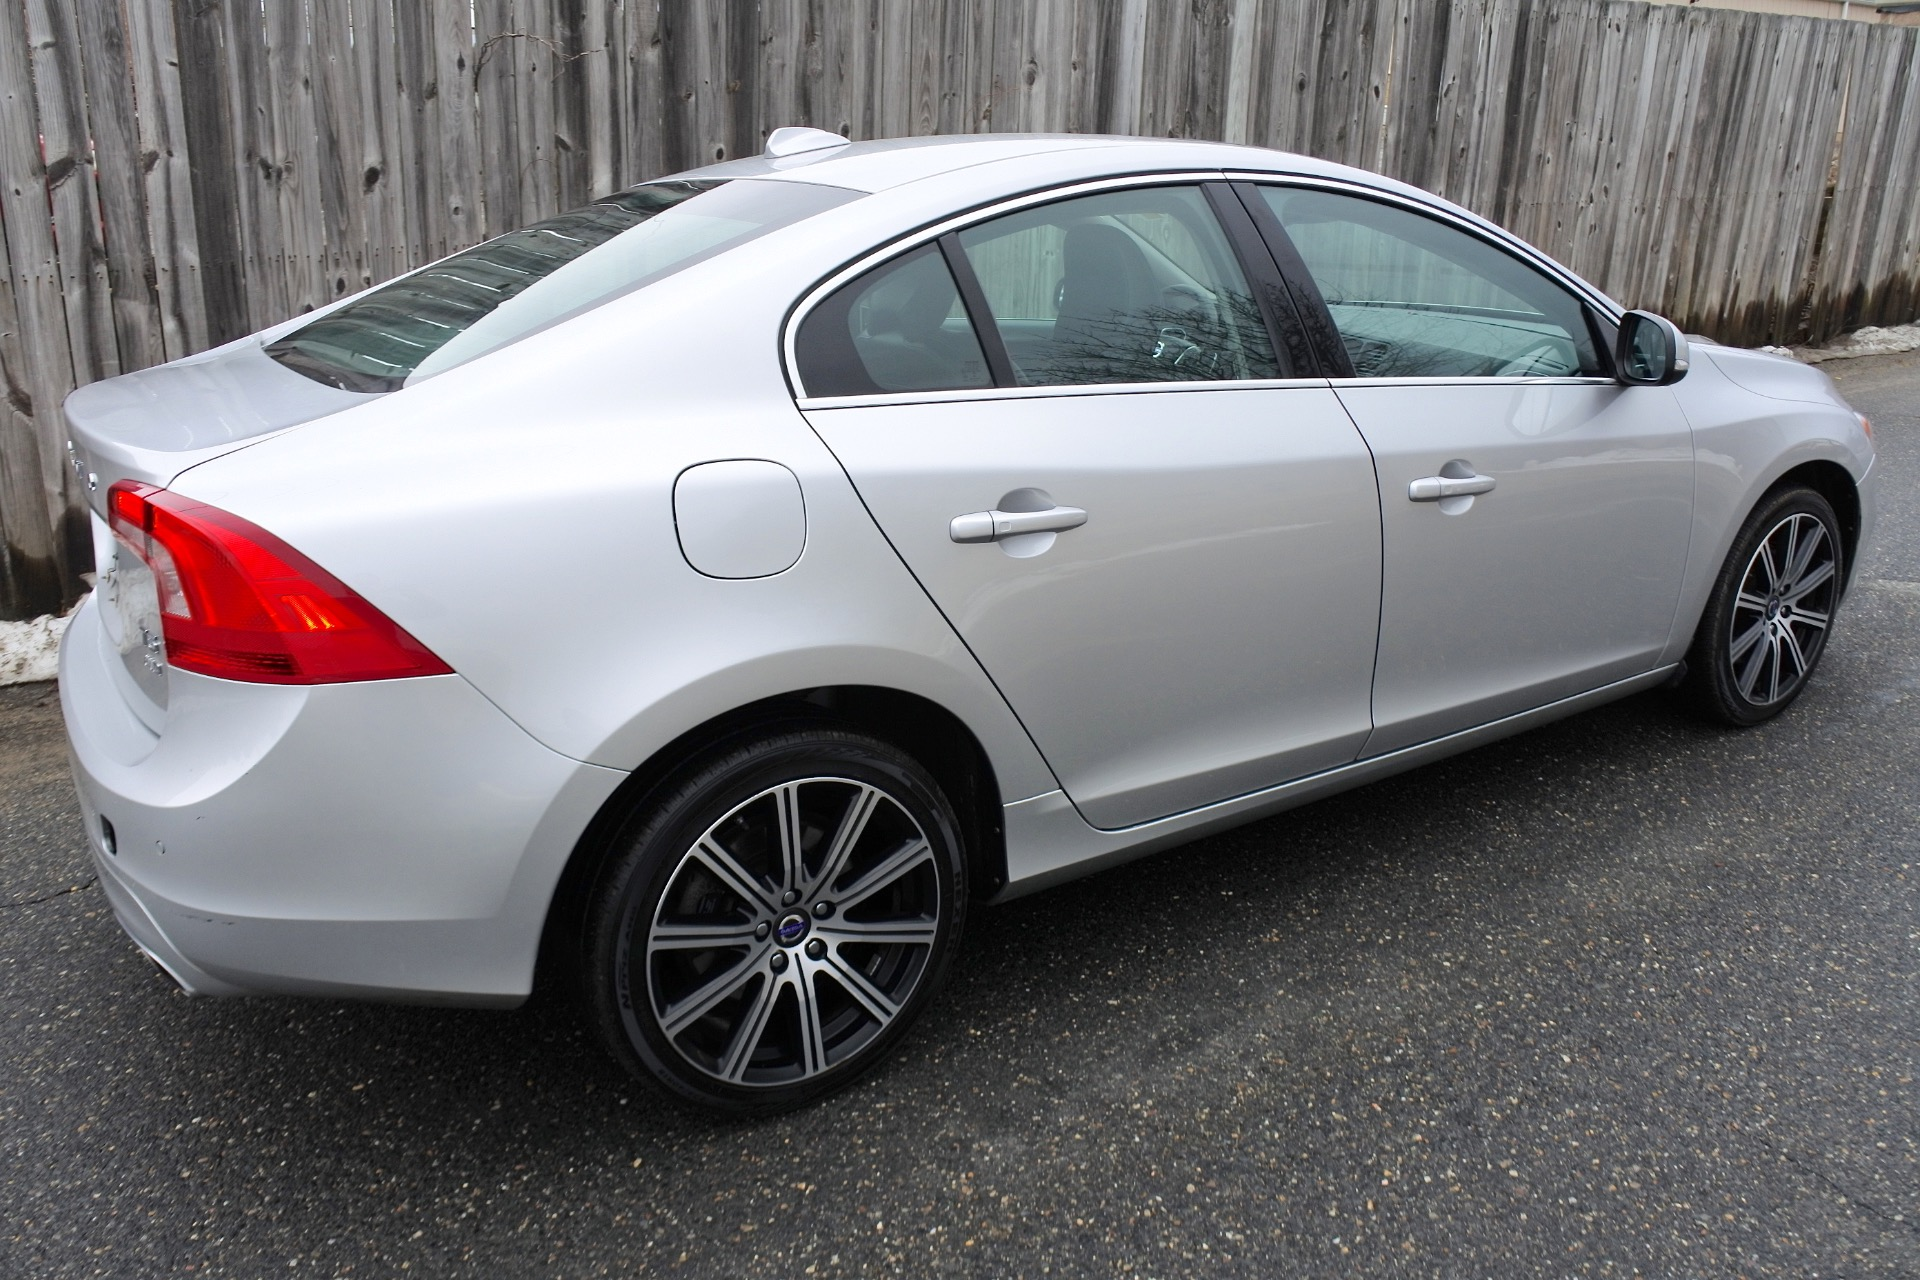 Used 2014 Volvo S60 4dr Sdn T5 Premier AWD Used 2014 Volvo S60 4dr Sdn T5 Premier AWD for sale  at Metro West Motorcars LLC in Shrewsbury MA 4